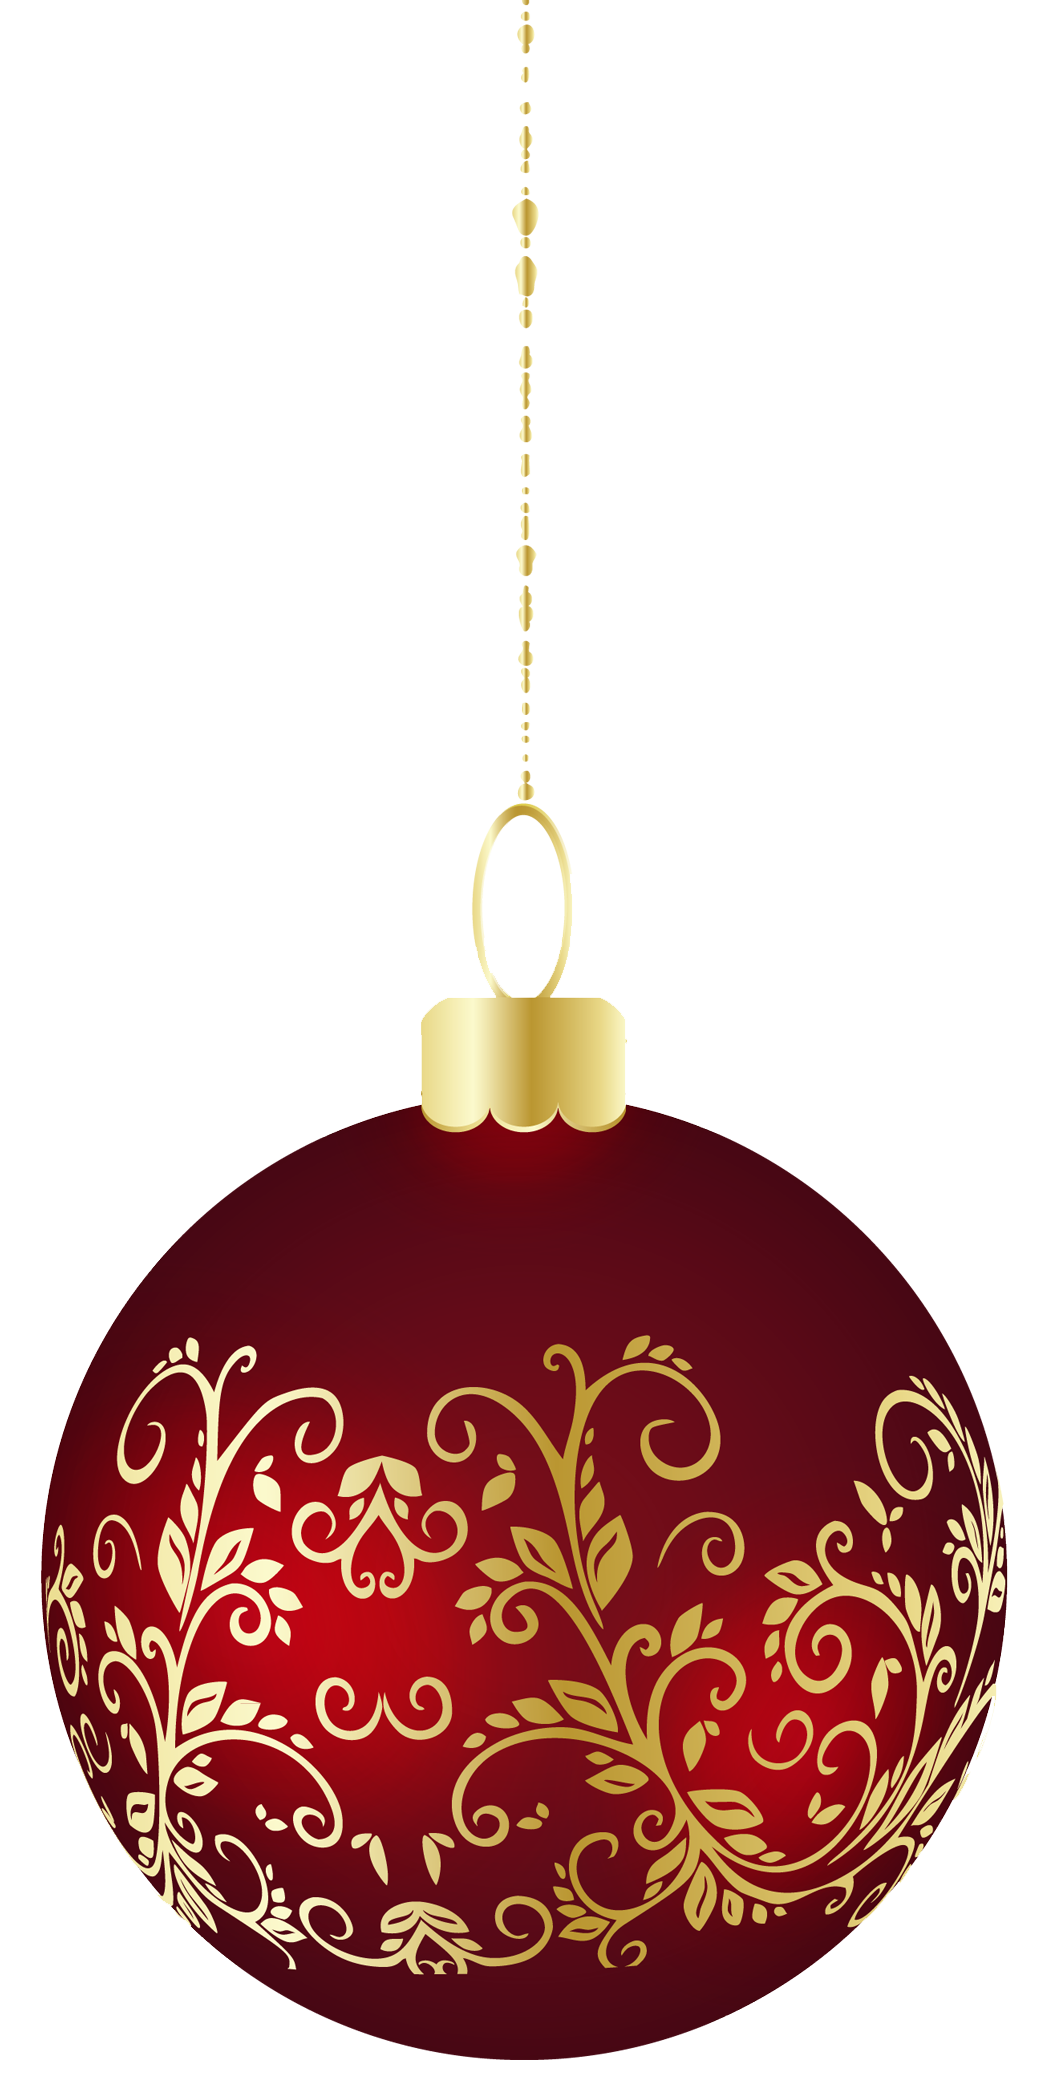 Large Transparent Christmas Ball Ornament Png Clipart Christmas Lights Clipart Christmas Ornaments Christmas Clipart